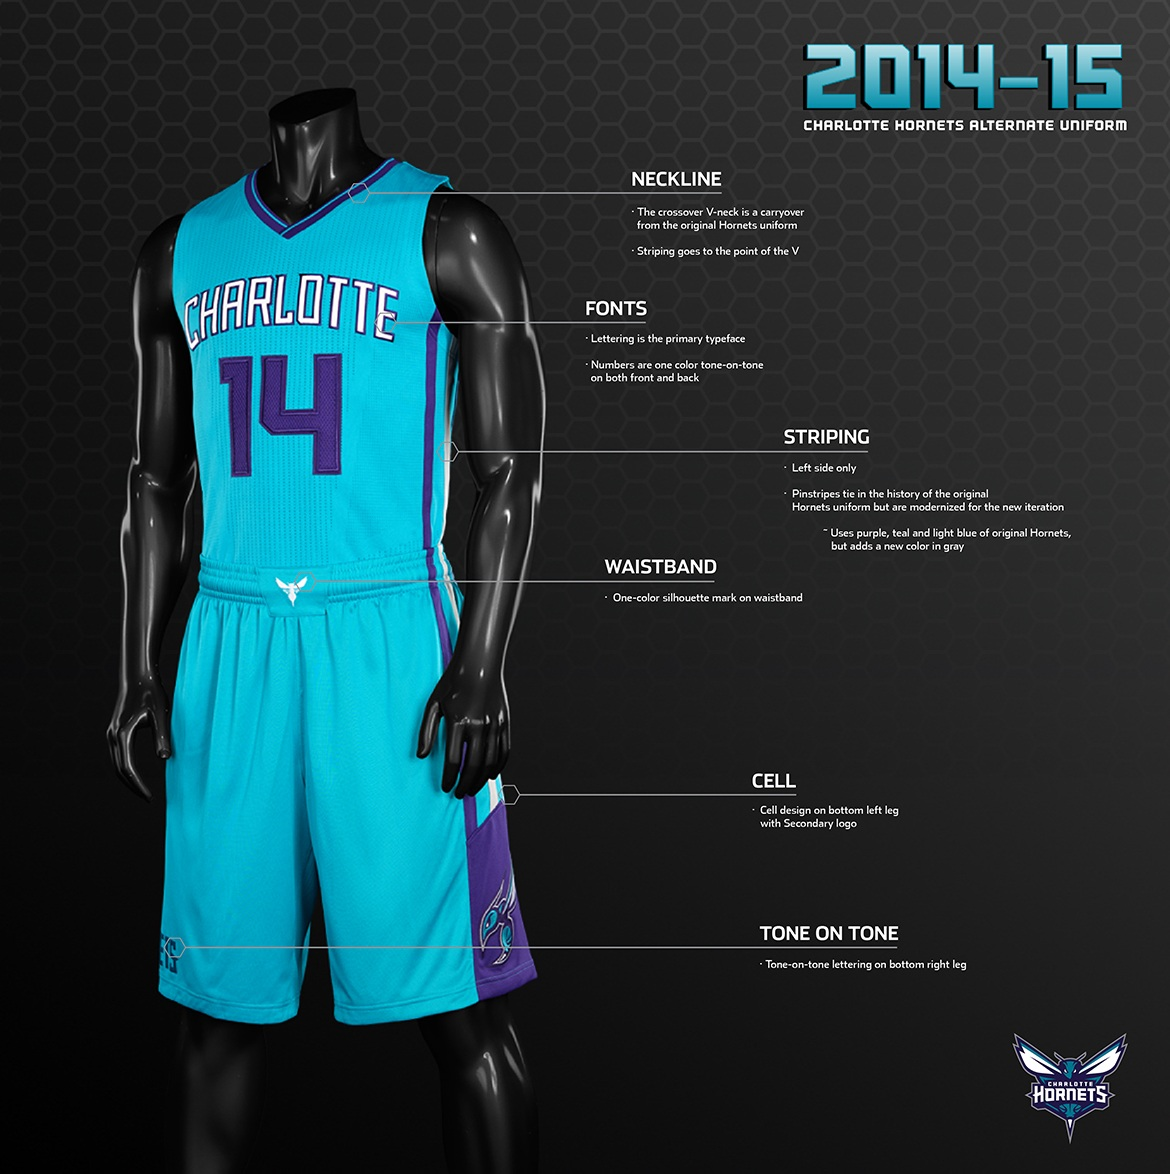 93bfb191fcf NBA: Charlotte Hornets unveil 3 new uniforms | Dilemma X